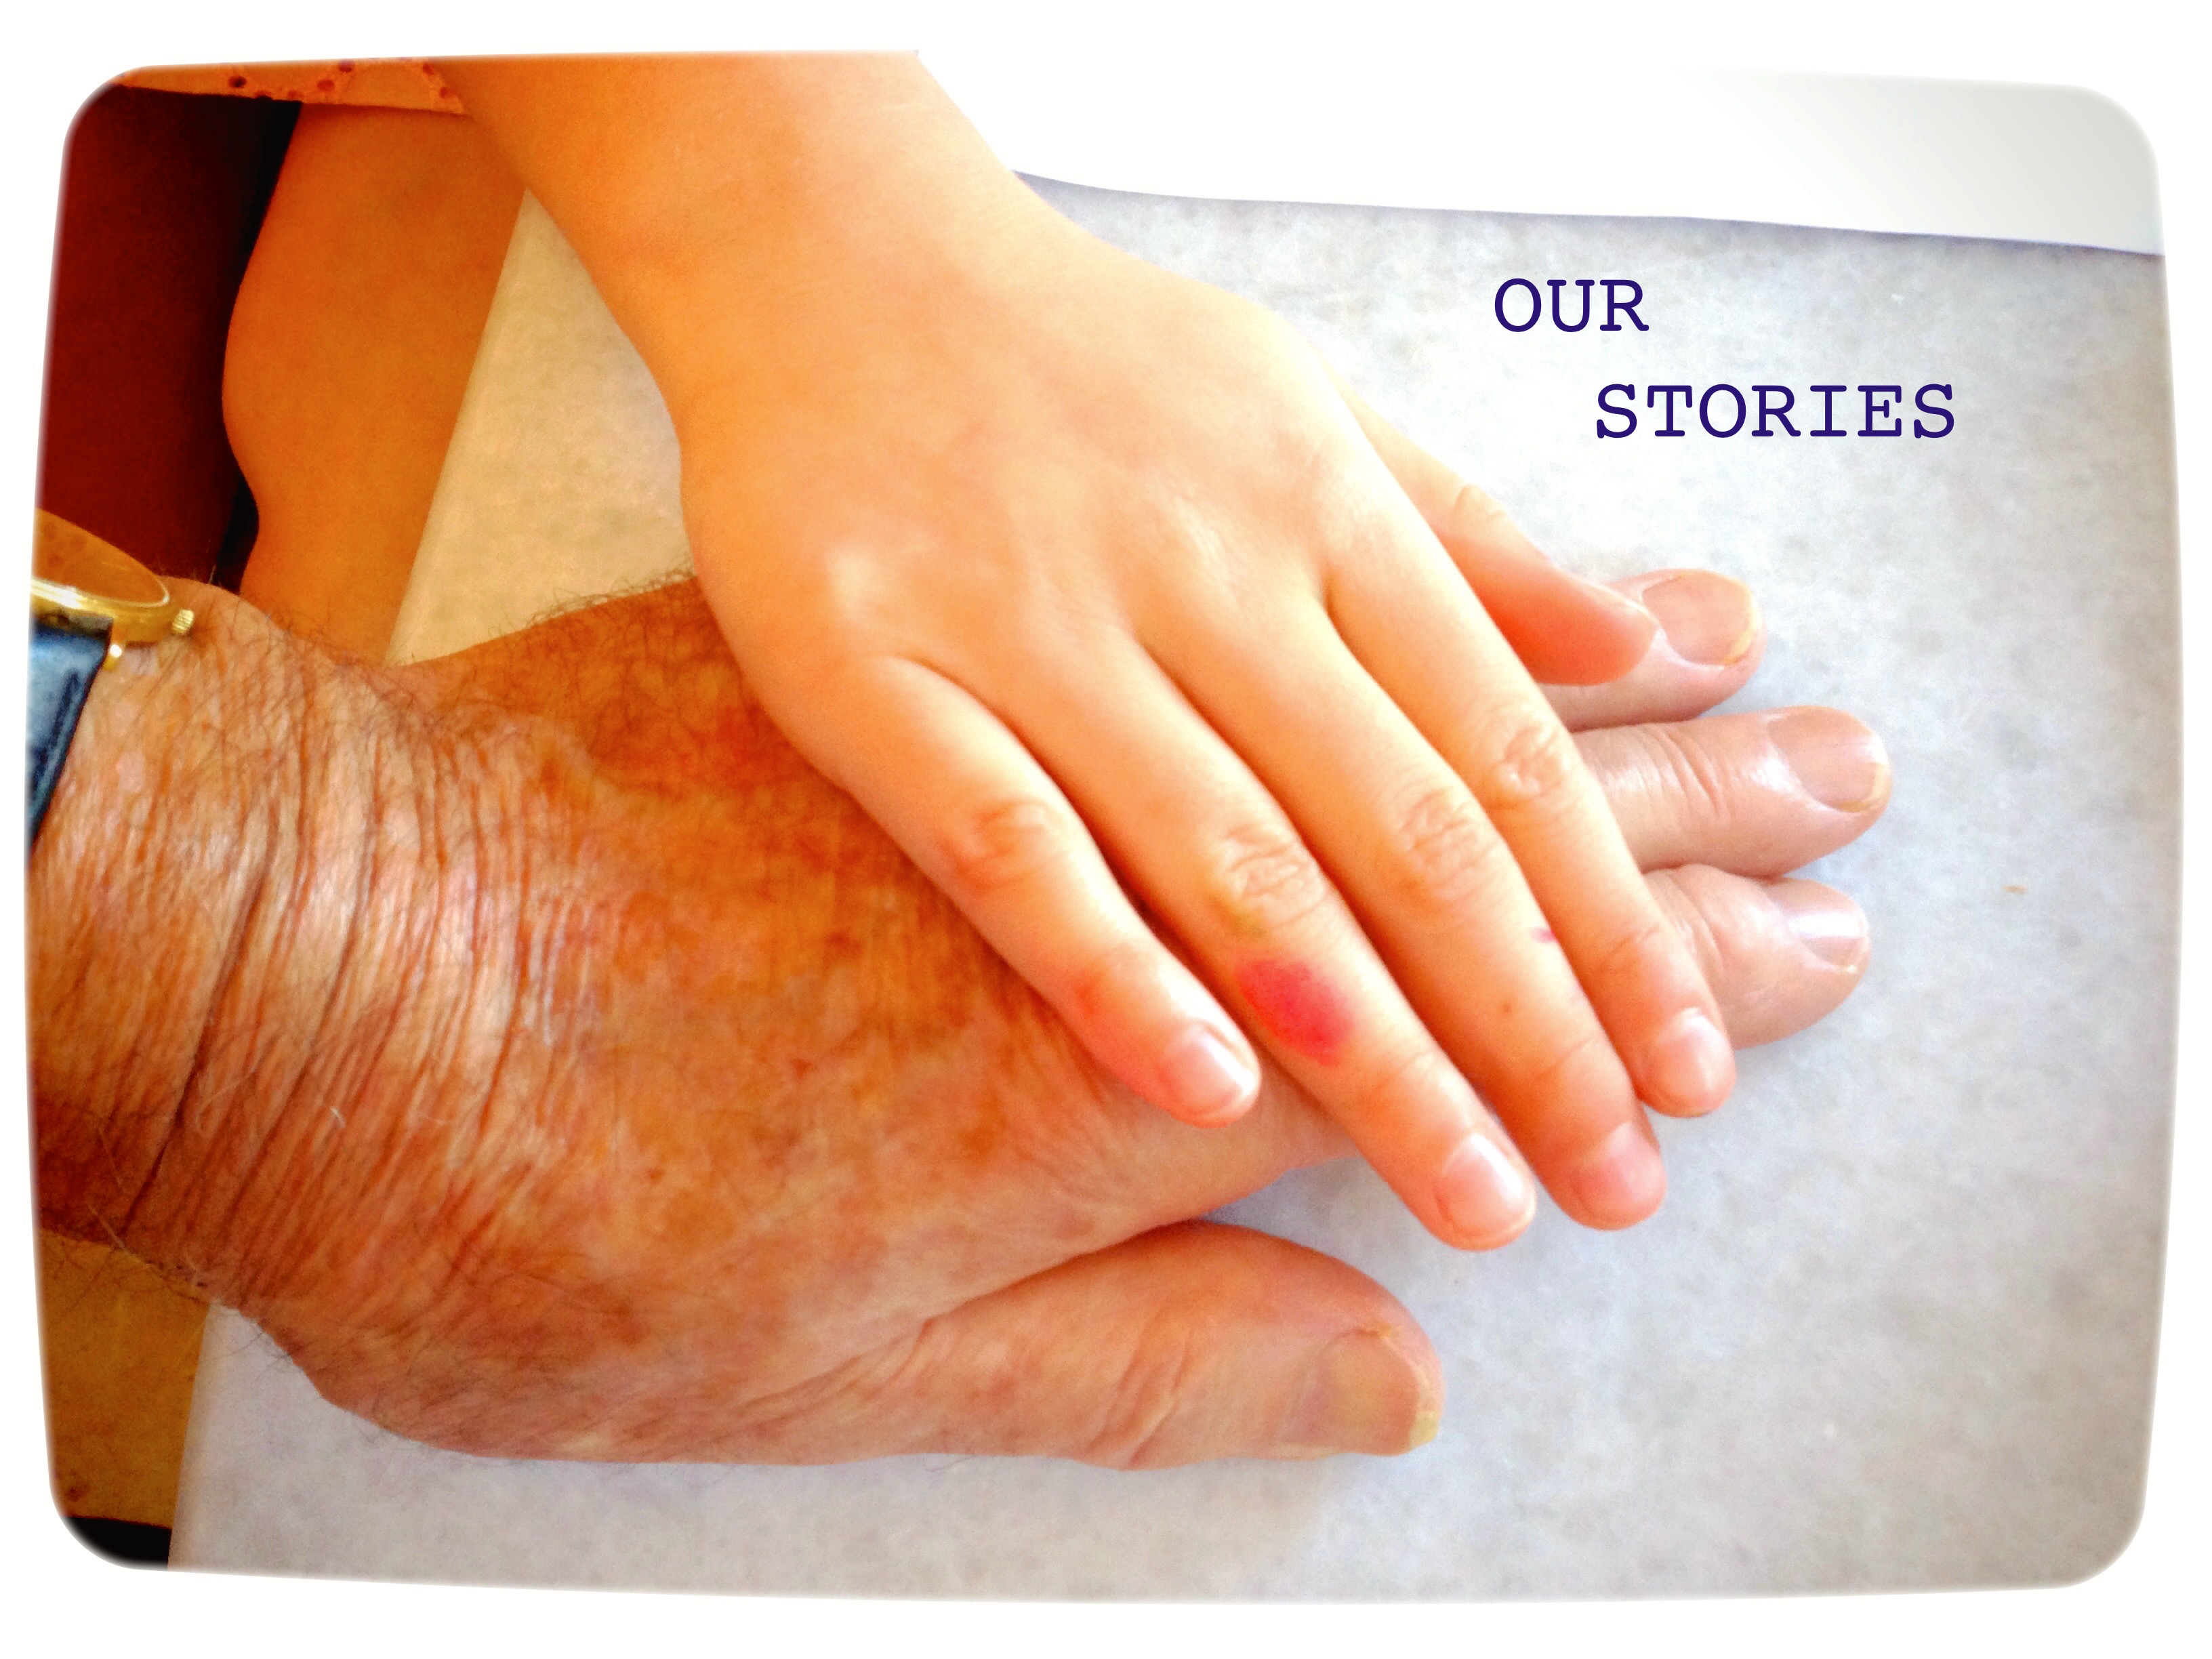 OUR STORIES LOGO (Hands)